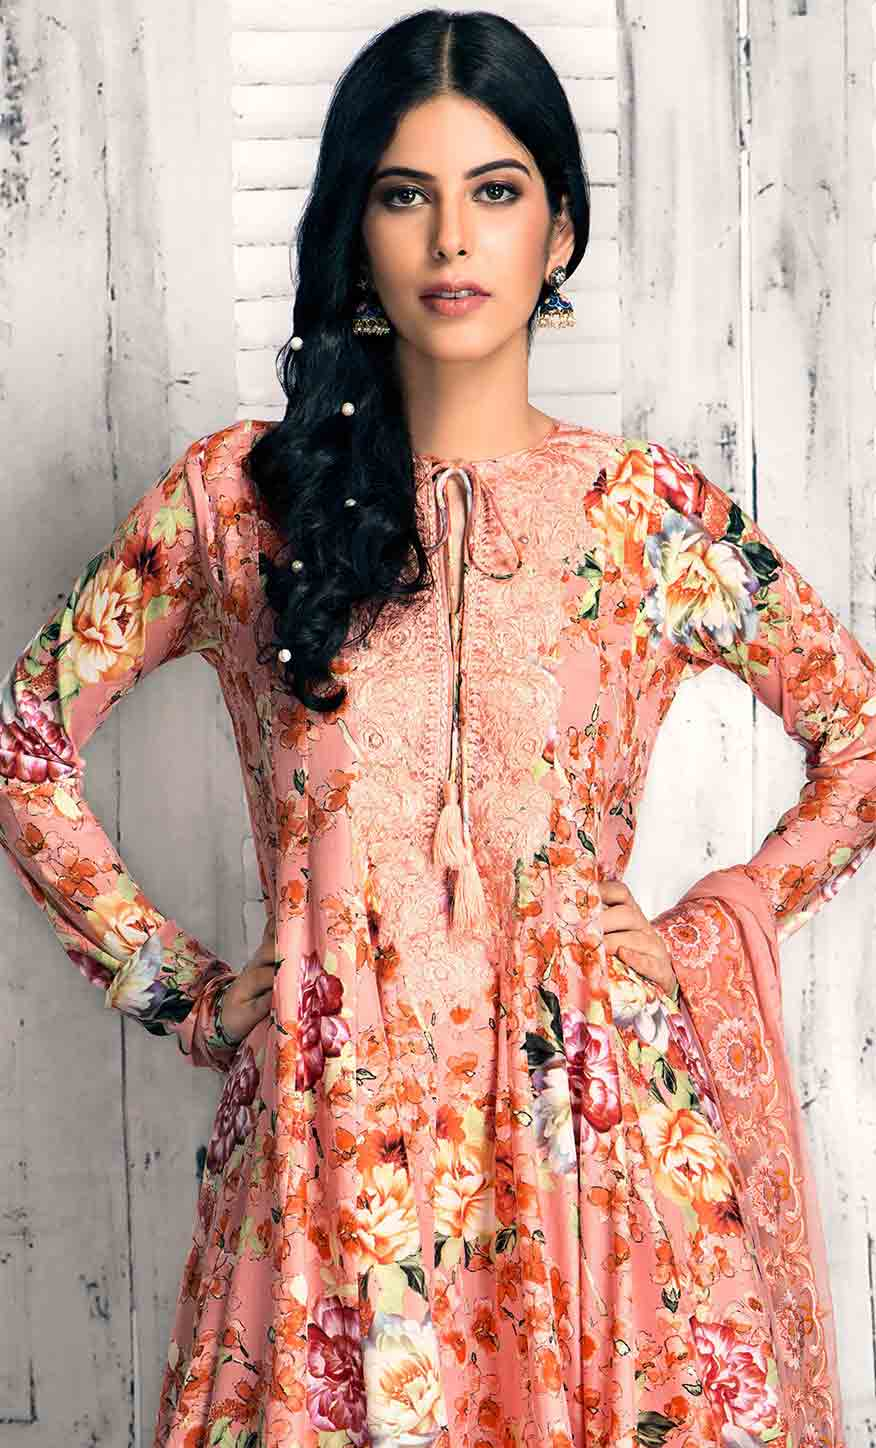 Gul AHmed peach short frock new eid dress designs for girls in Pakistan 2017